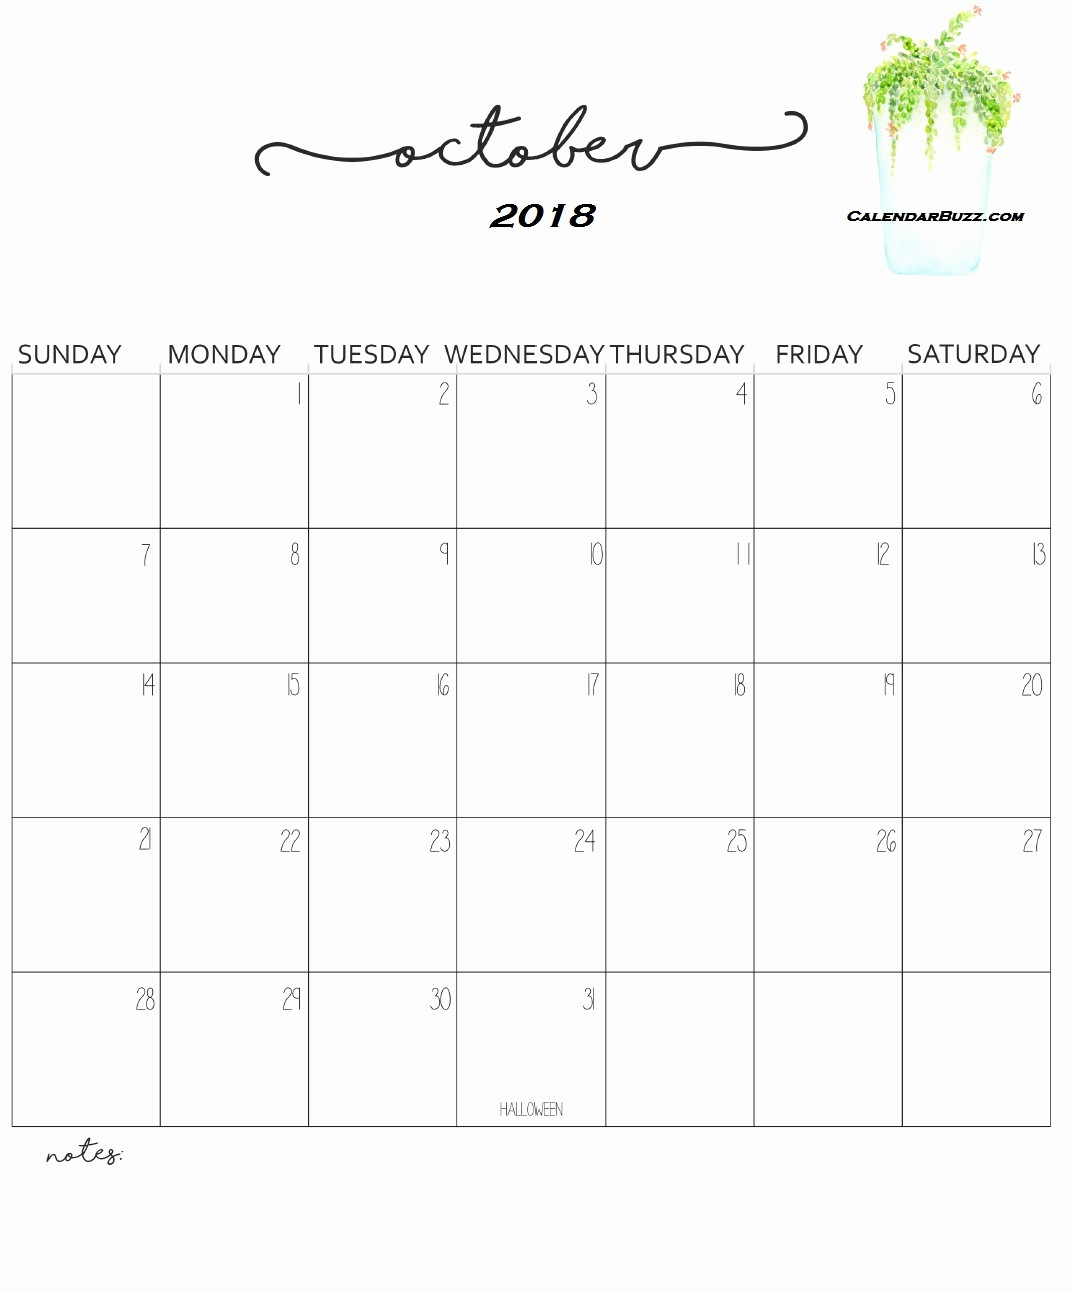 2018 Month by Month Calendar Beautiful Monthly Wall Calendars 2018 January to December